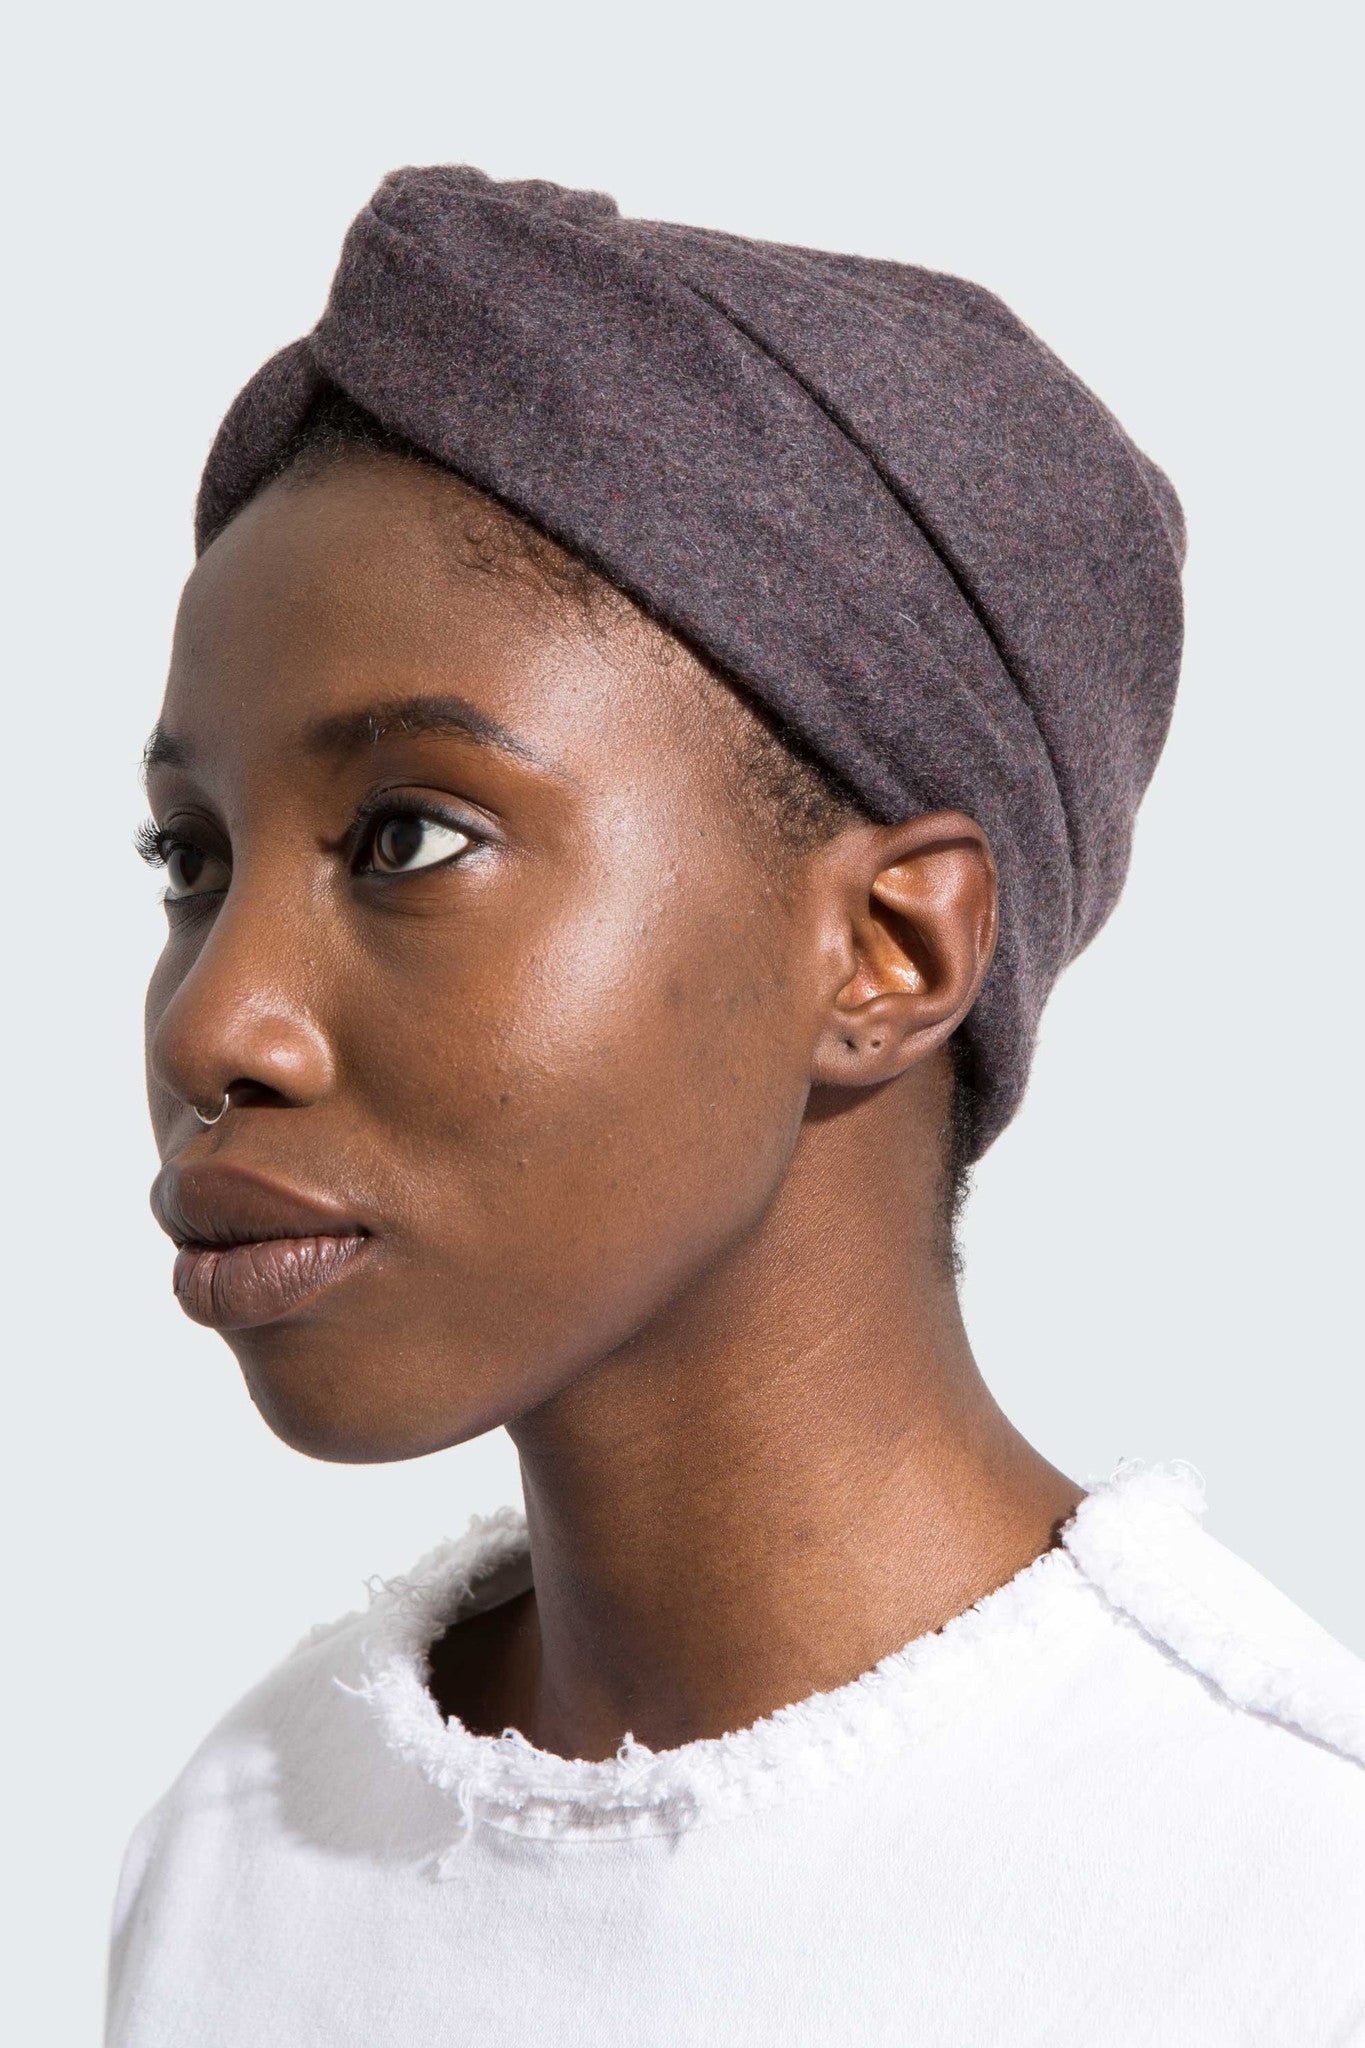 Charlie turban is a modern, soft, Italian cashmere turban designed by Another Garde's milliner, Julia Emily Knox